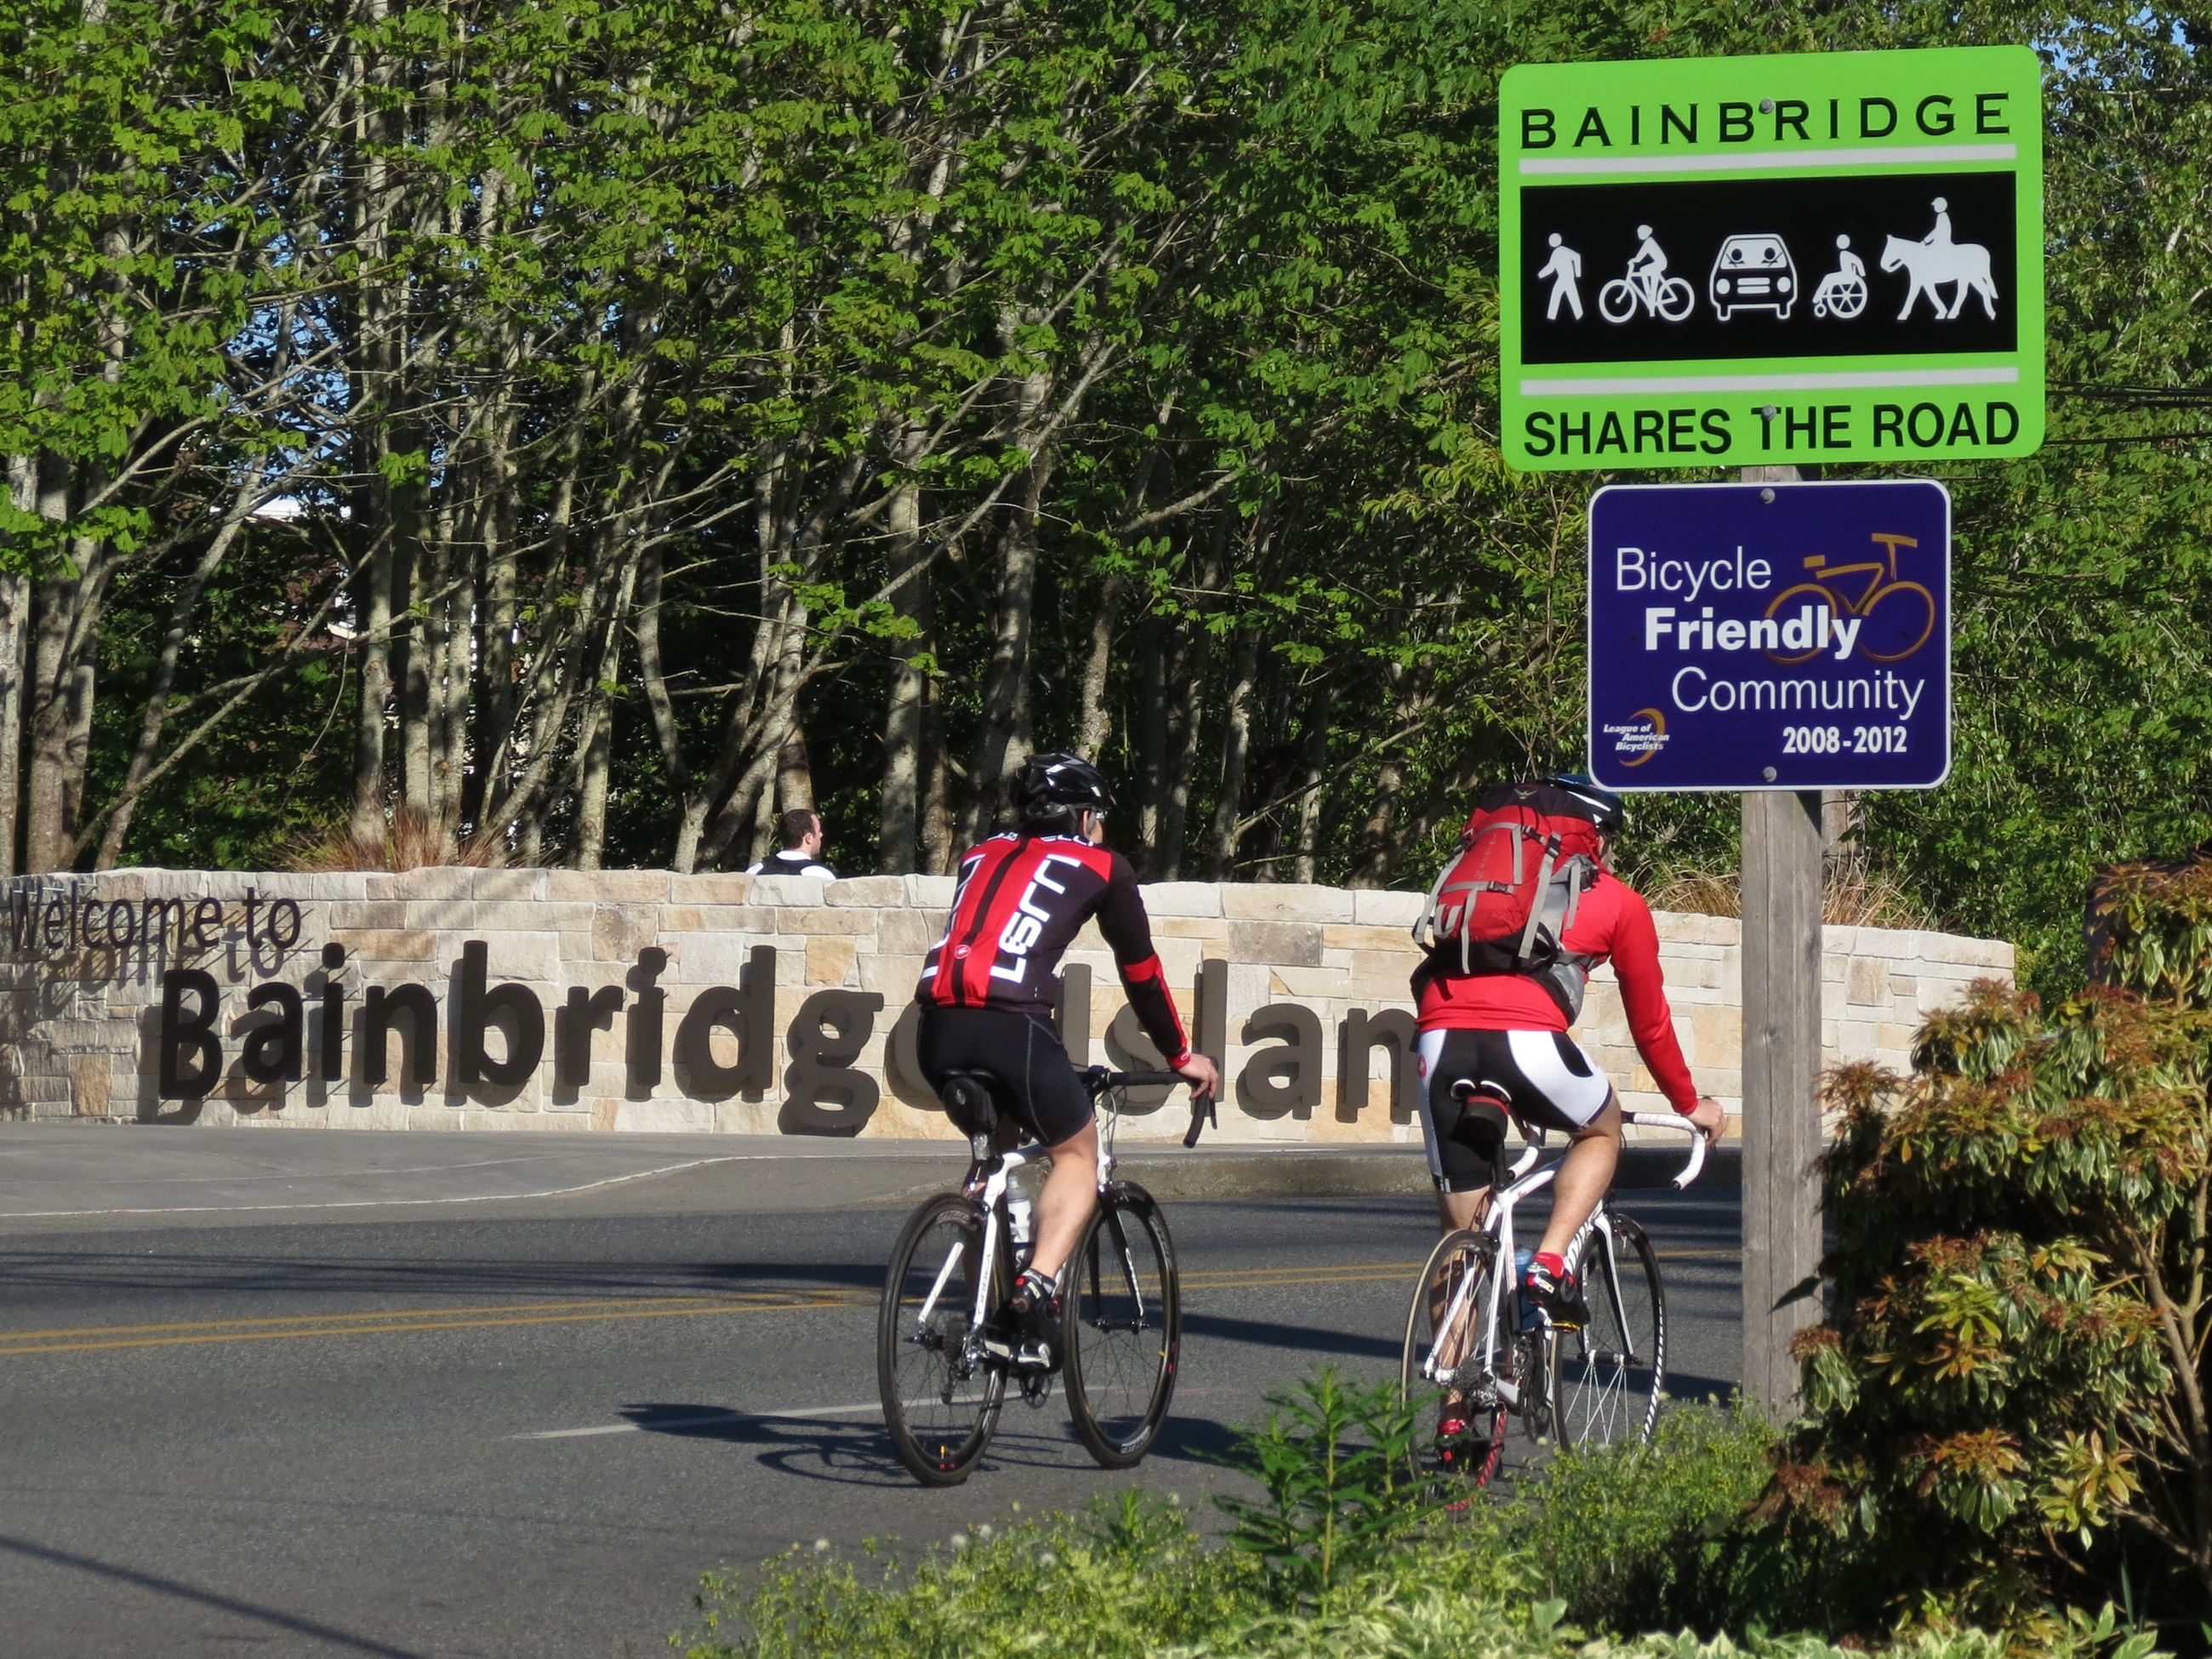 Connecting Bainbridge: SAFE Mobility Levy